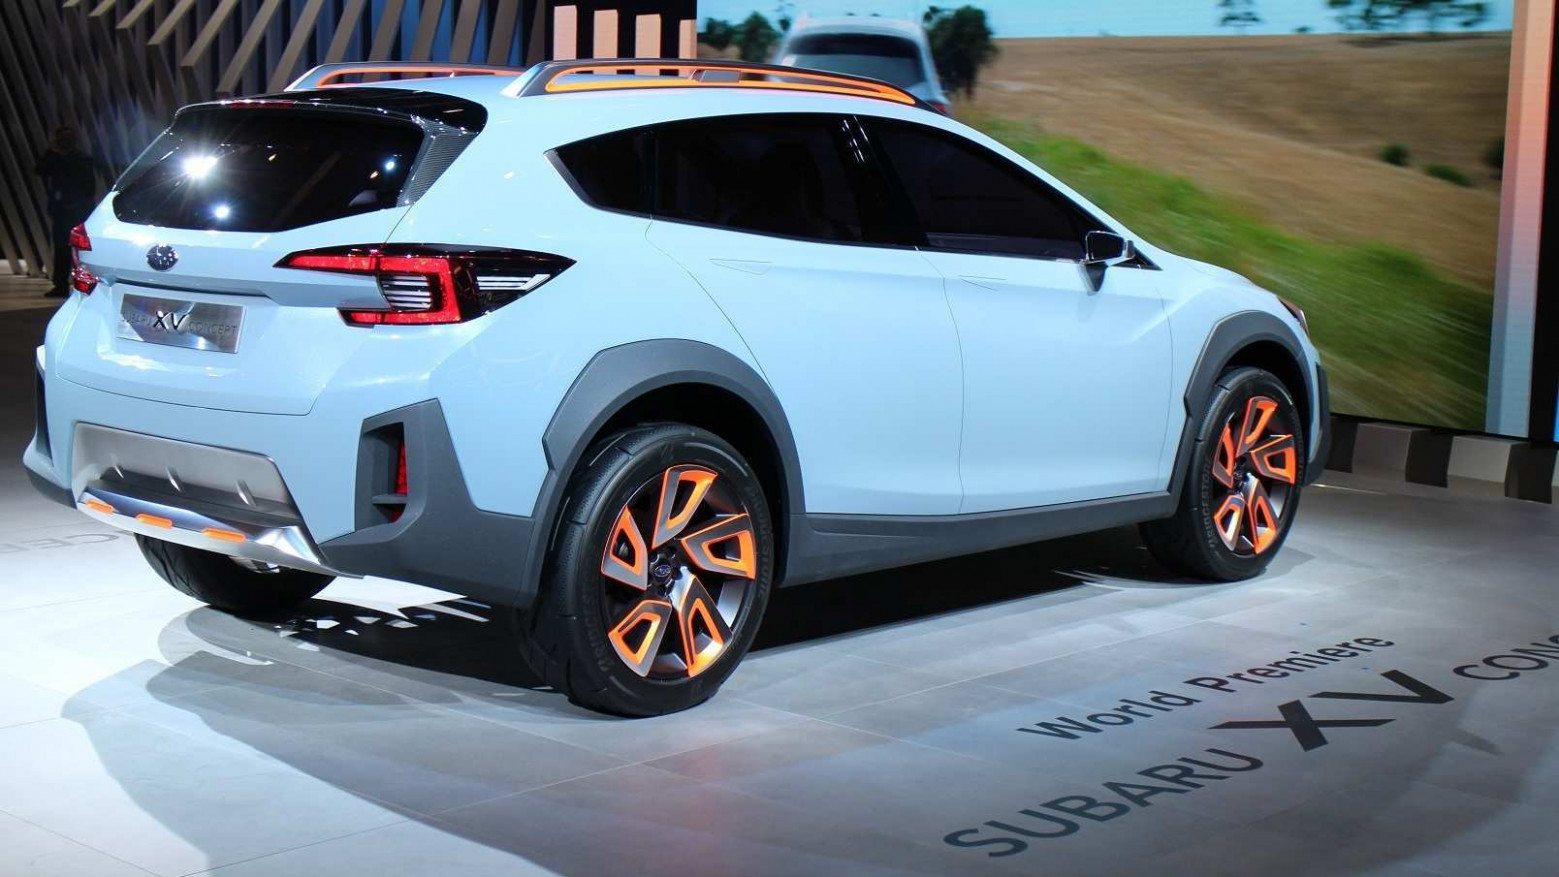 6 Concept of Subaru Xv 6 New Concept Redesign and Concept by ...